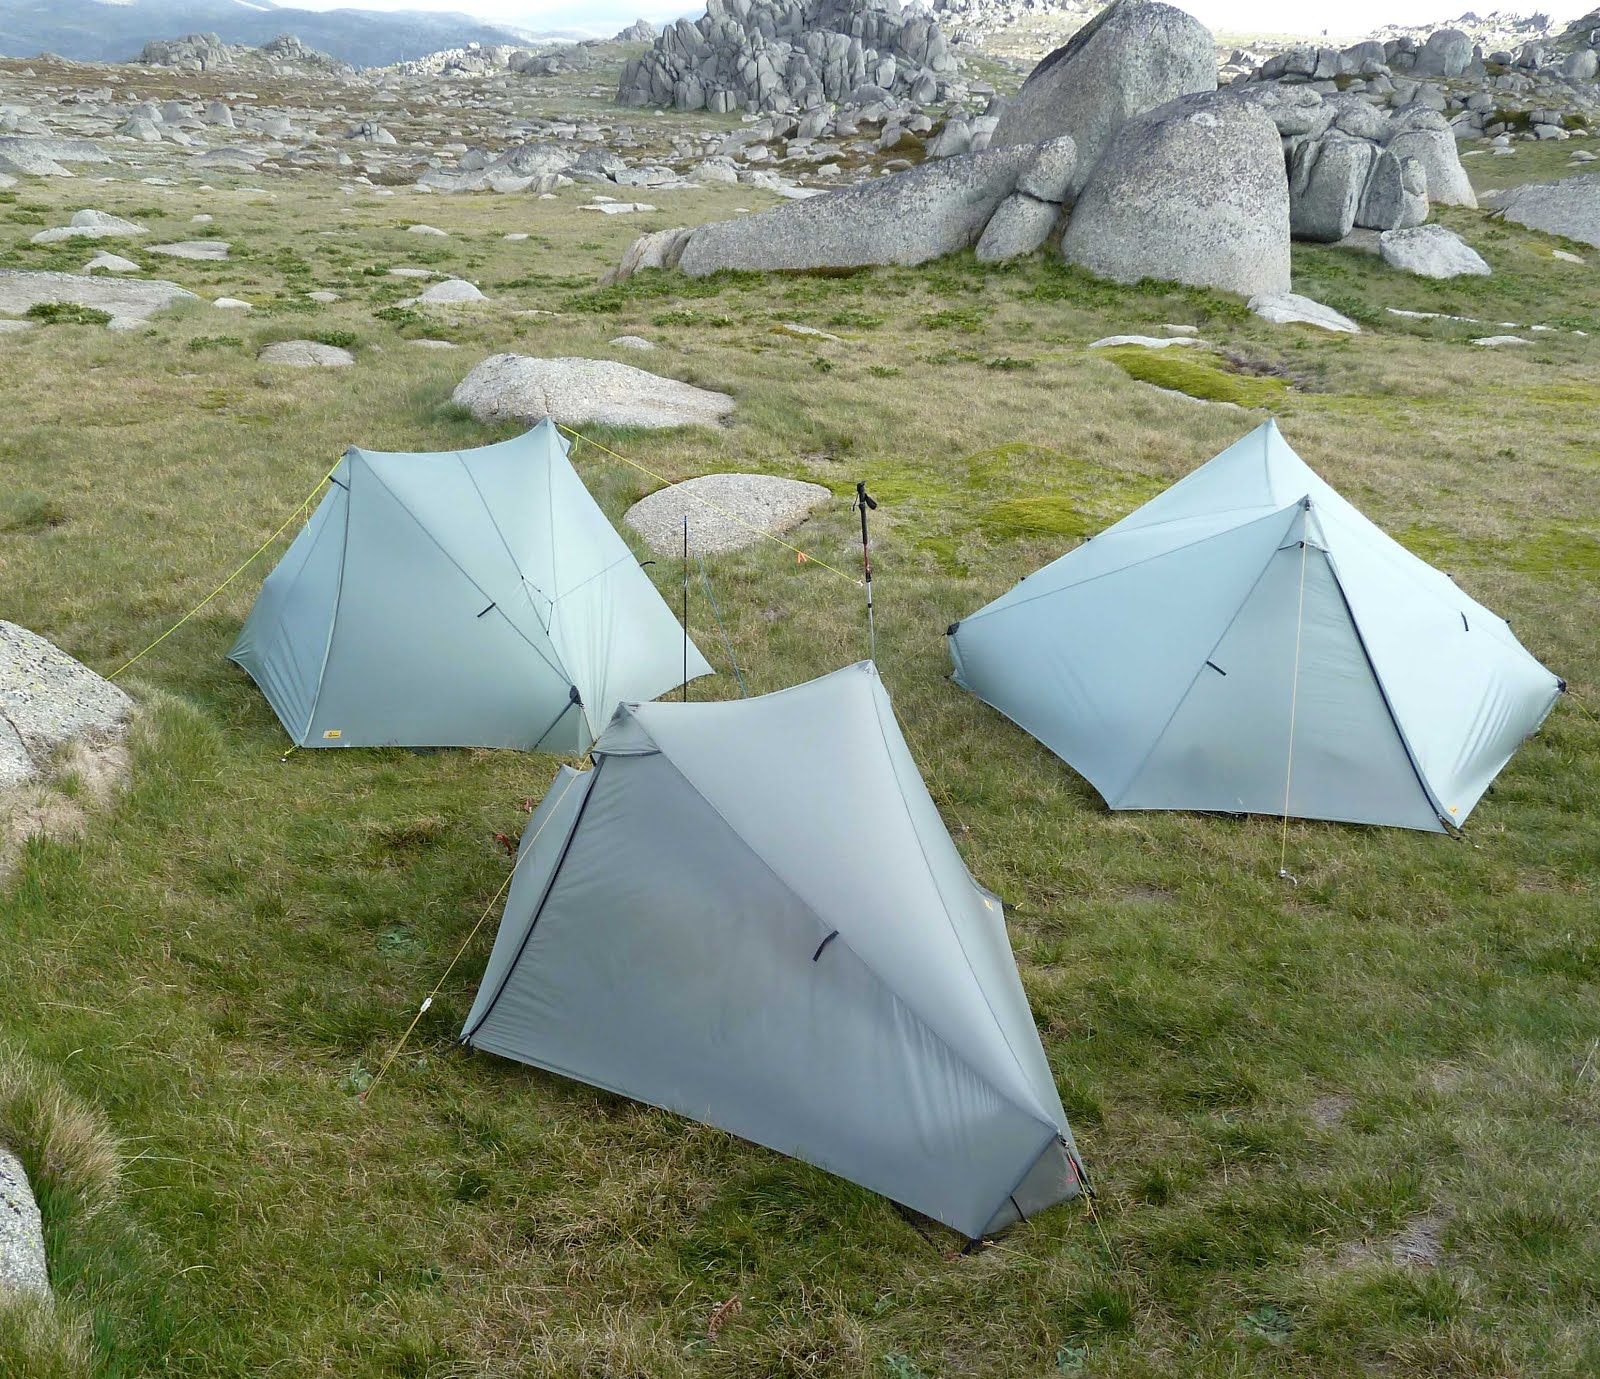 Clockwise from top left Tarptent StratoSpire 1 StratoSpire 2 and Notch & Bushwalking Light: Tarptent StratoSpire 1 - First Look and Long ...